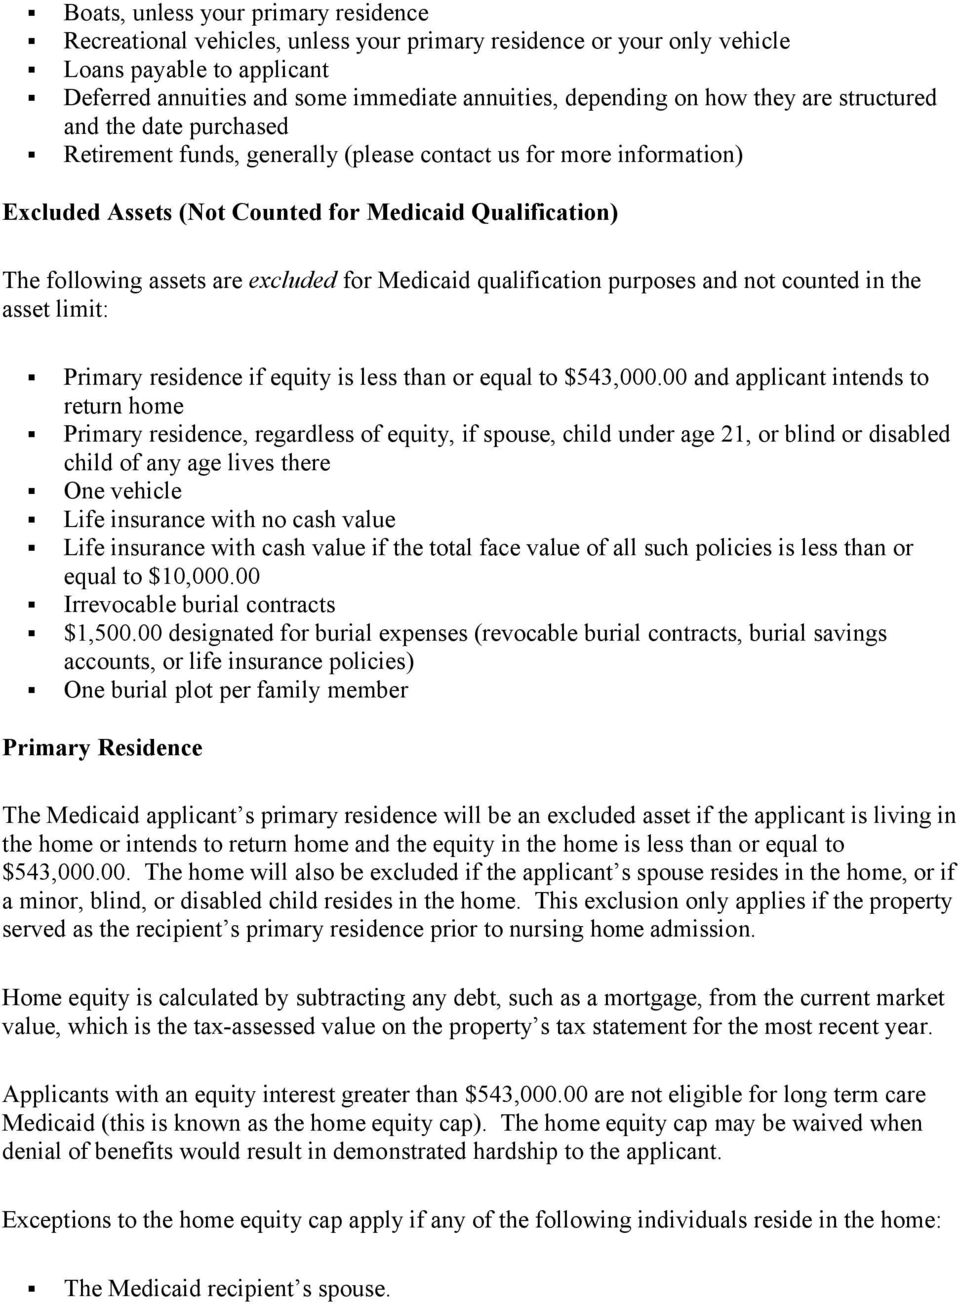 excluded for Medicaid qualification purposes and not counted in the asset limit: Primary residence if equity is less than or equal to $543,000.